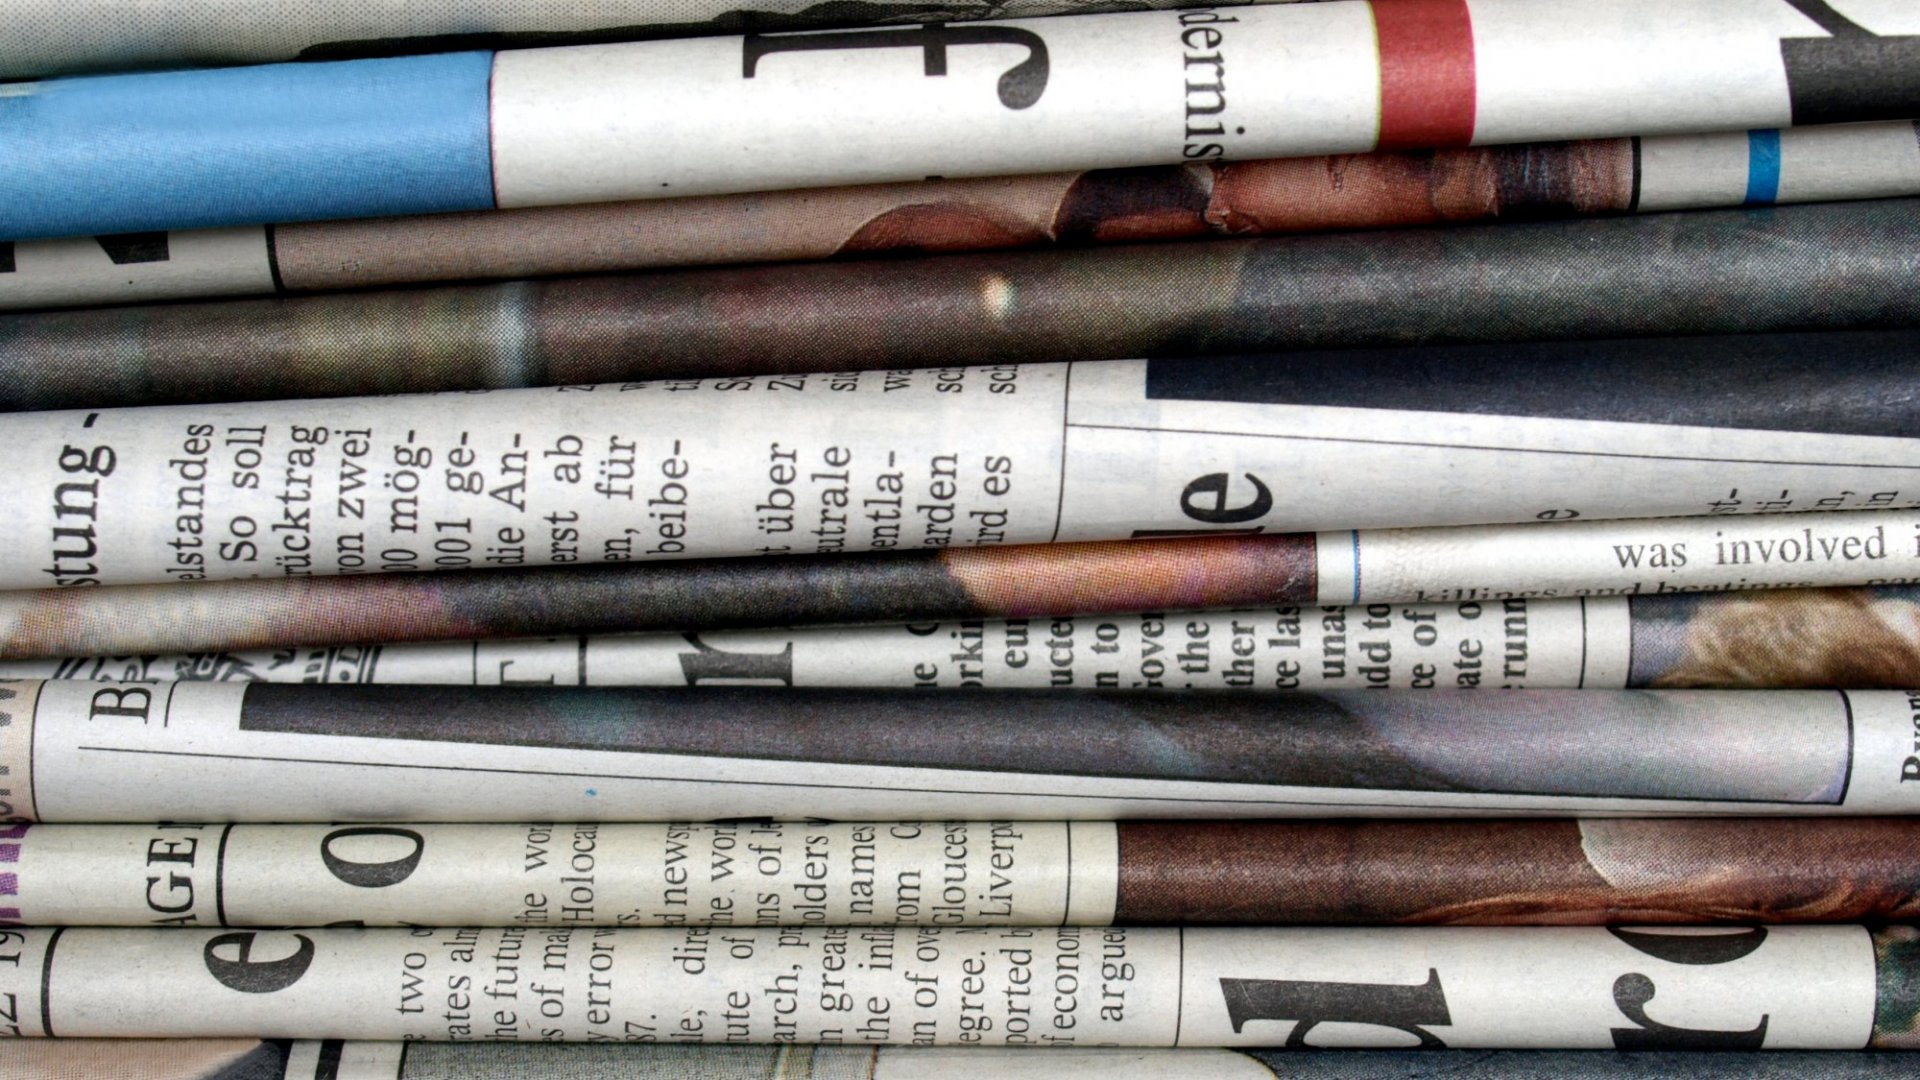 How To Standout and Gain Press Coverage in a Competitive Media World